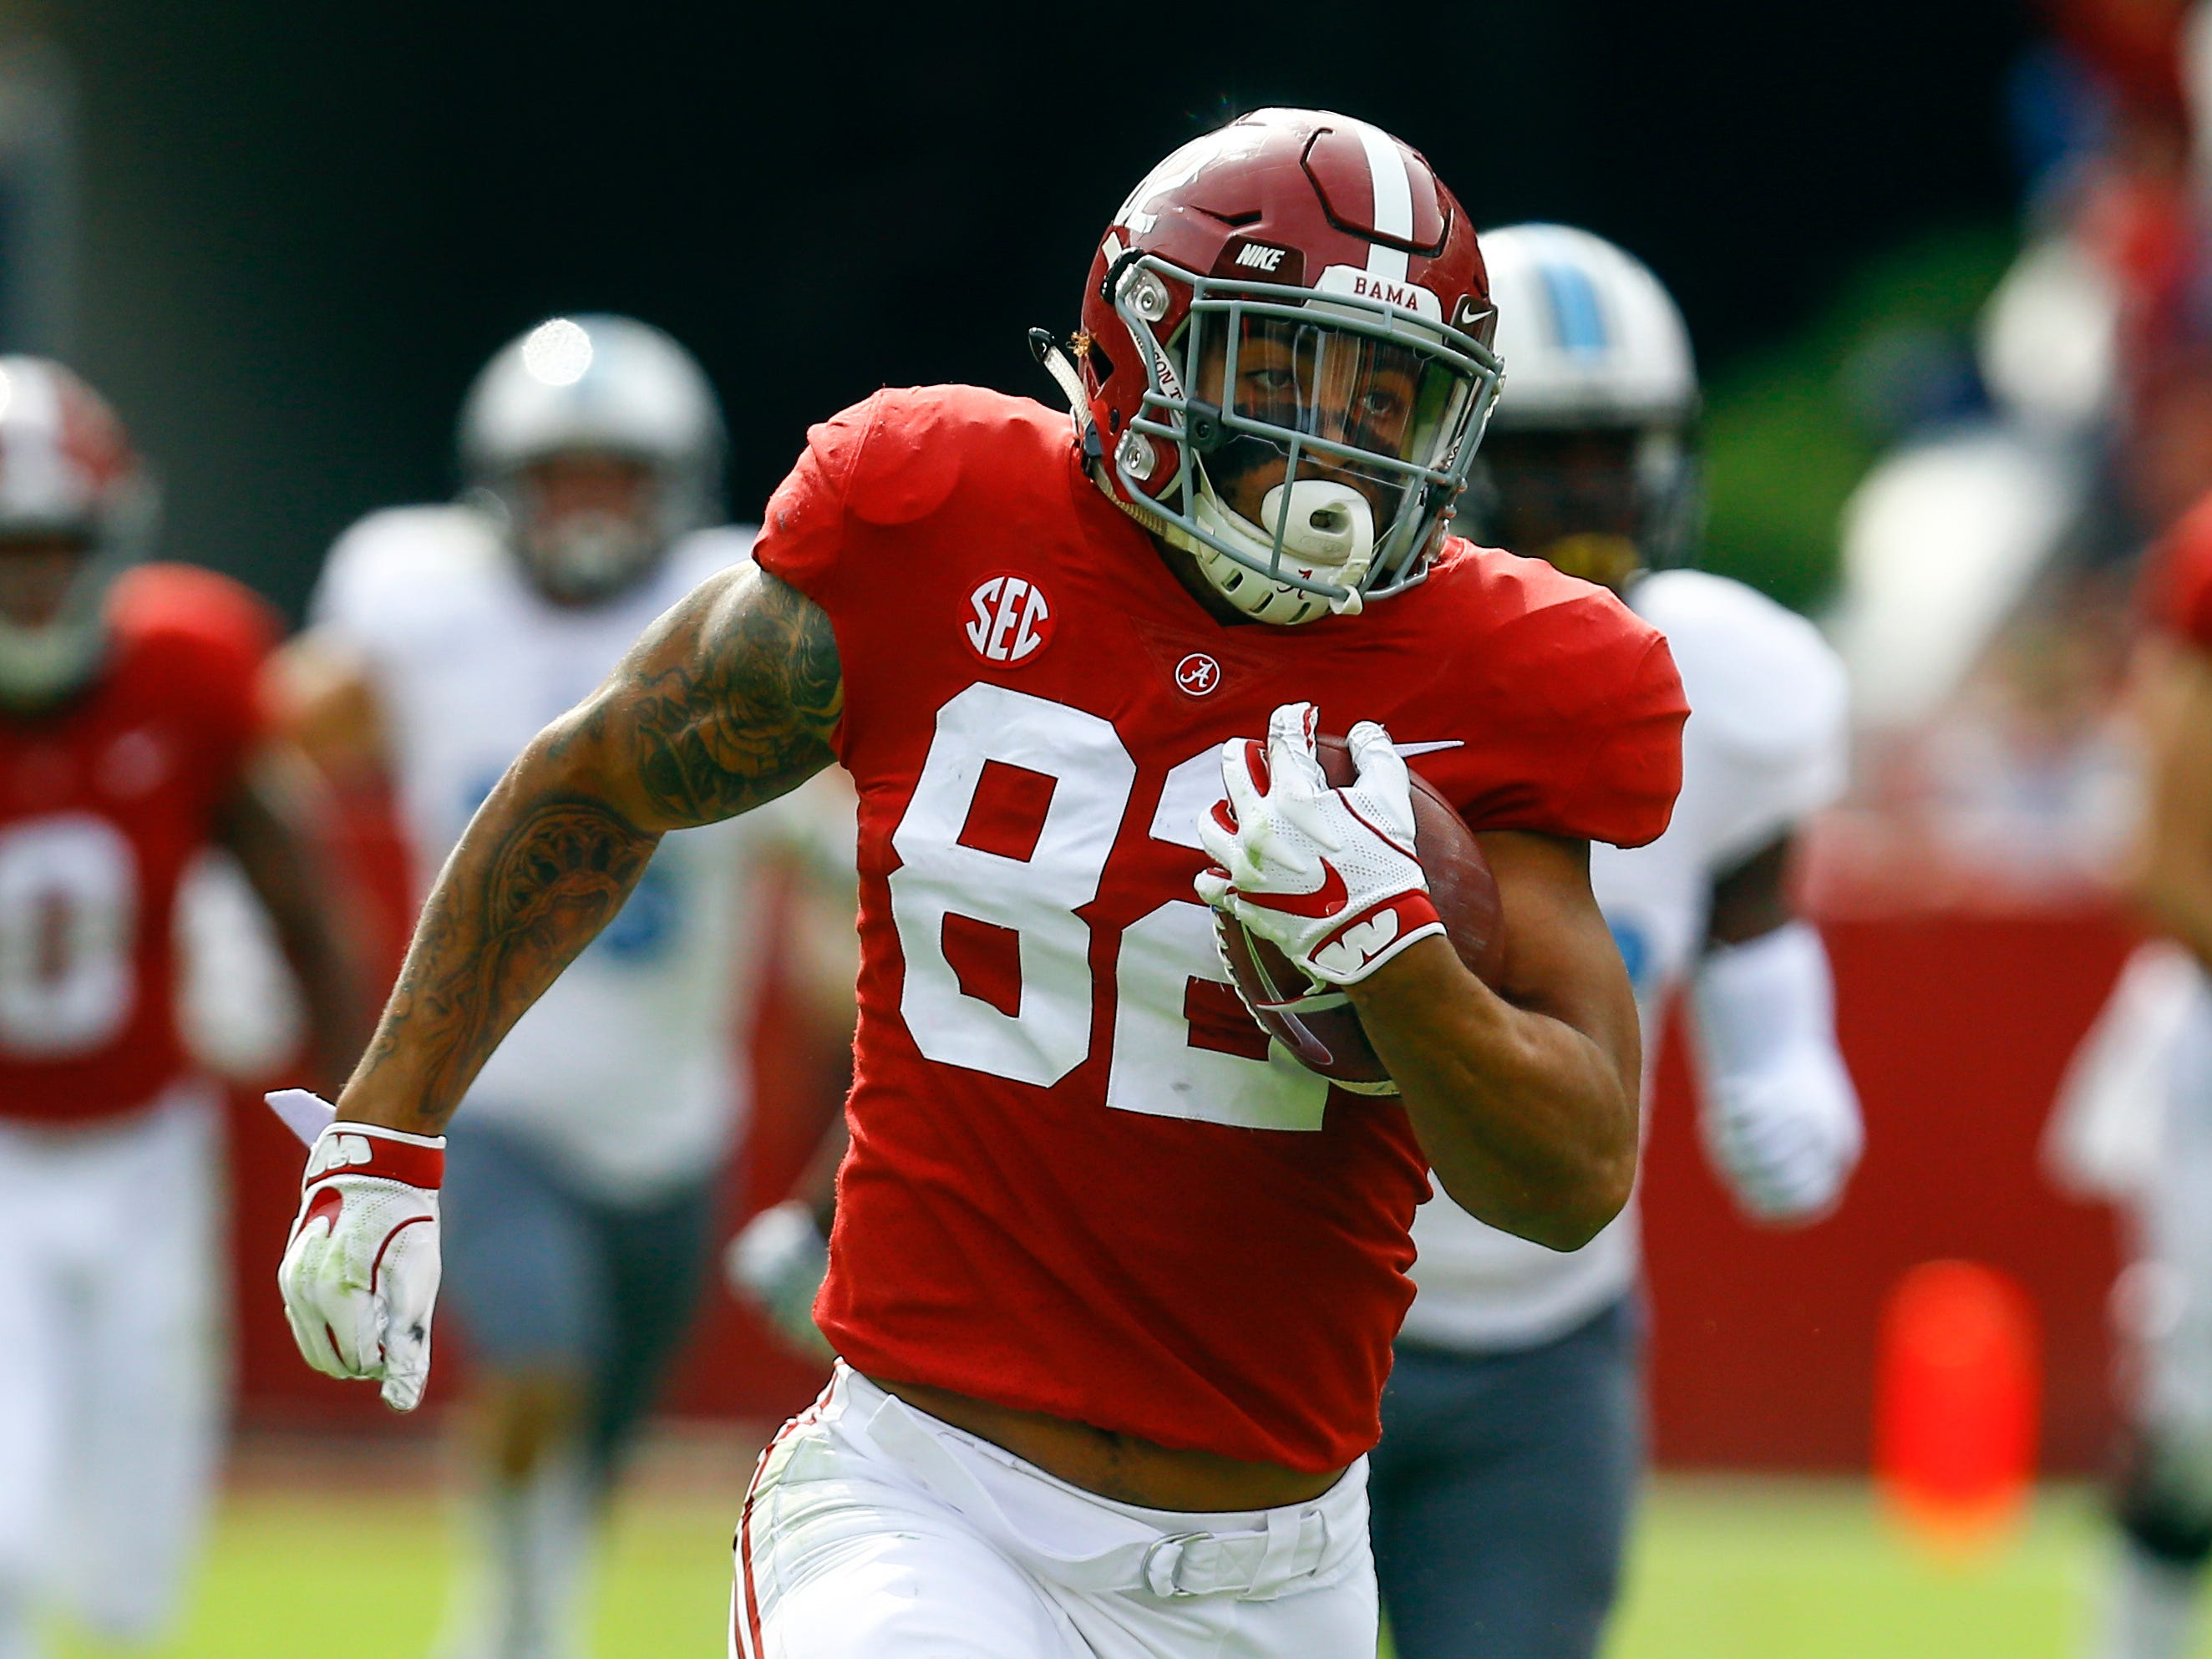 45. Irv Smith Jr., TE, Alabama: Smith probably won't give you much from a blocking perspective, but the athletic tight end has been a big-play machine for Alabama this season, averaging 17.1 yards on his 38 receptions, including seven scores.